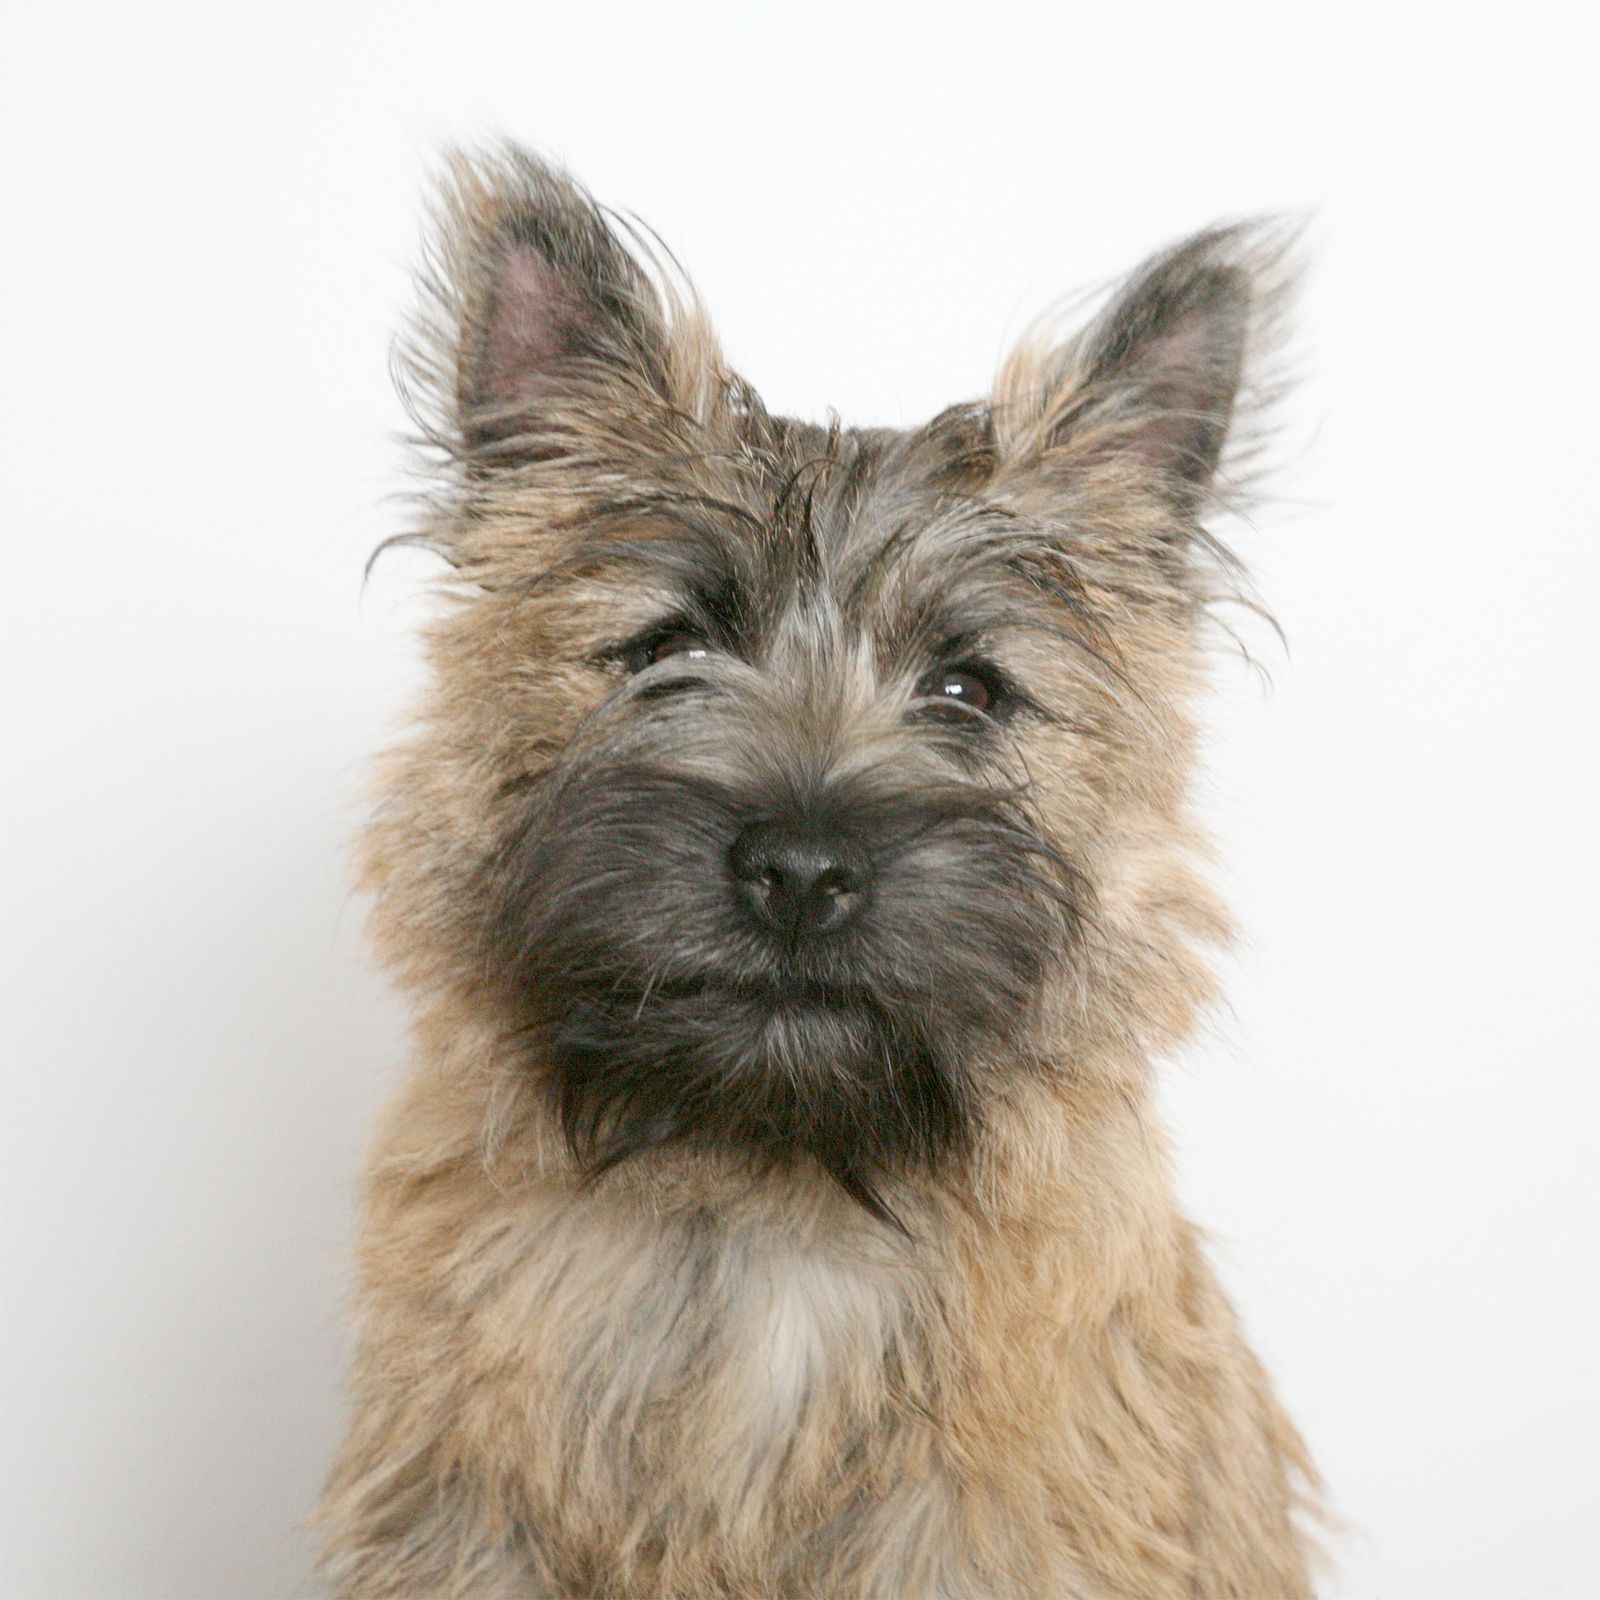 Cute Wheaten Cairn Terrier Dog Picture Photo Cairn Terrier Puppies Cairn Terrier Terrier Dogs